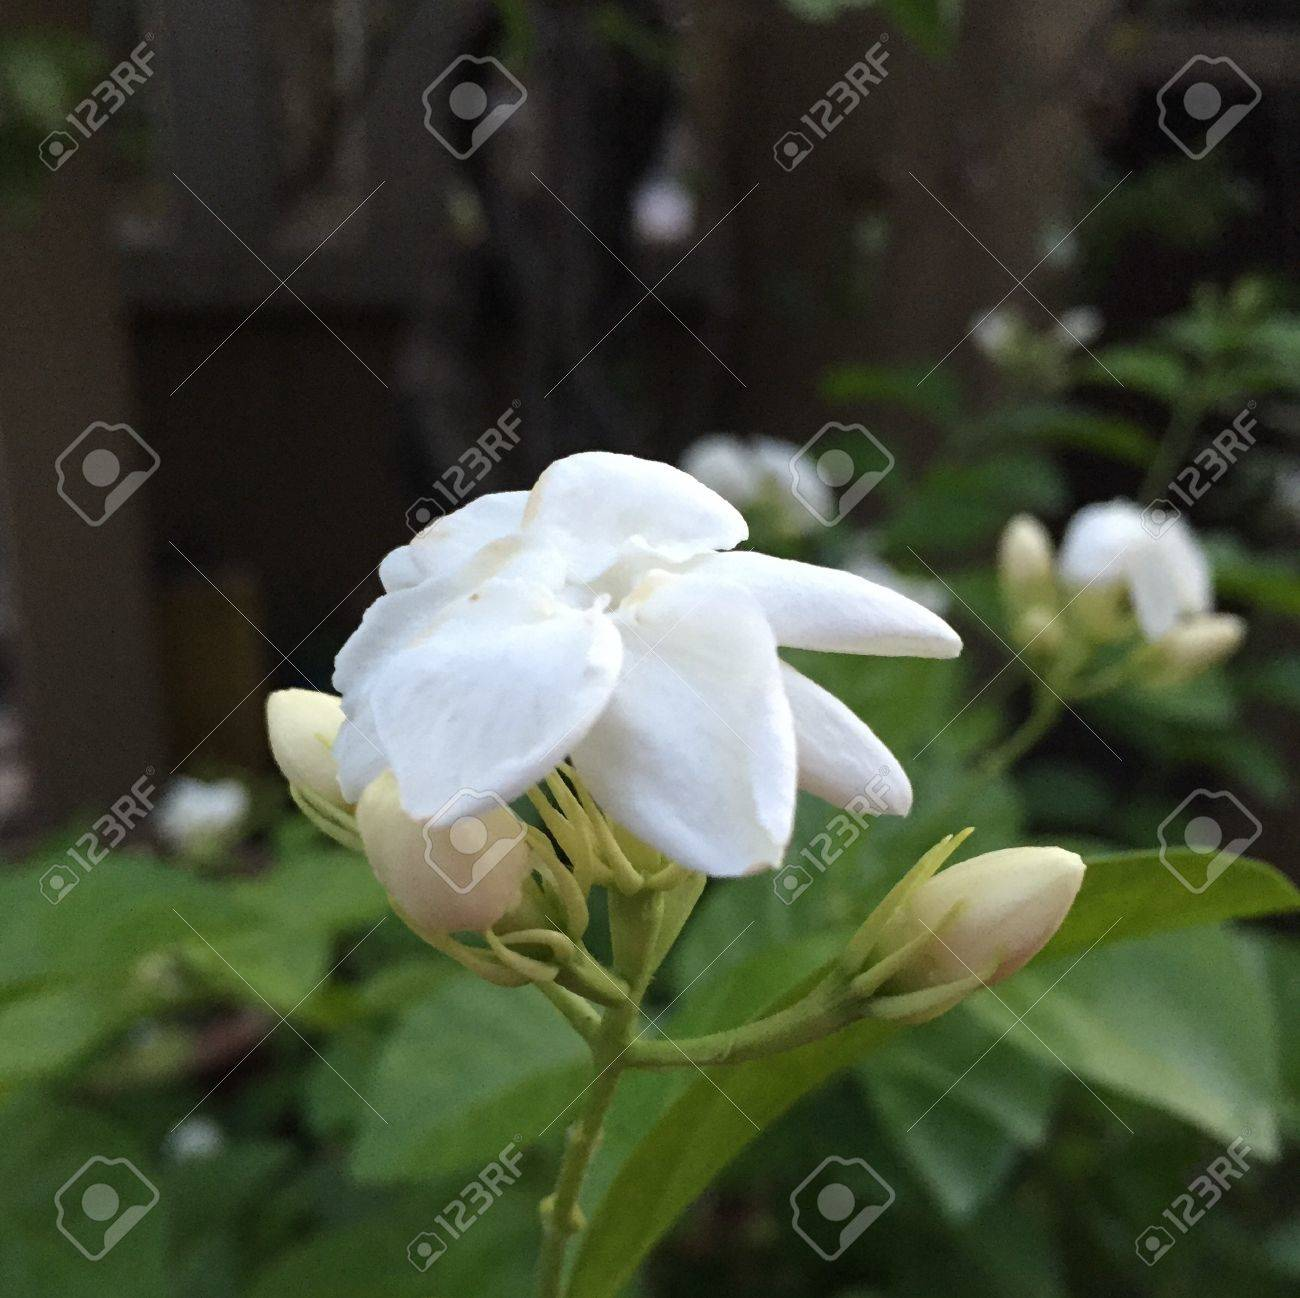 The Jasmine Exudes Sweet Like Fragrant That Is Soothing To The